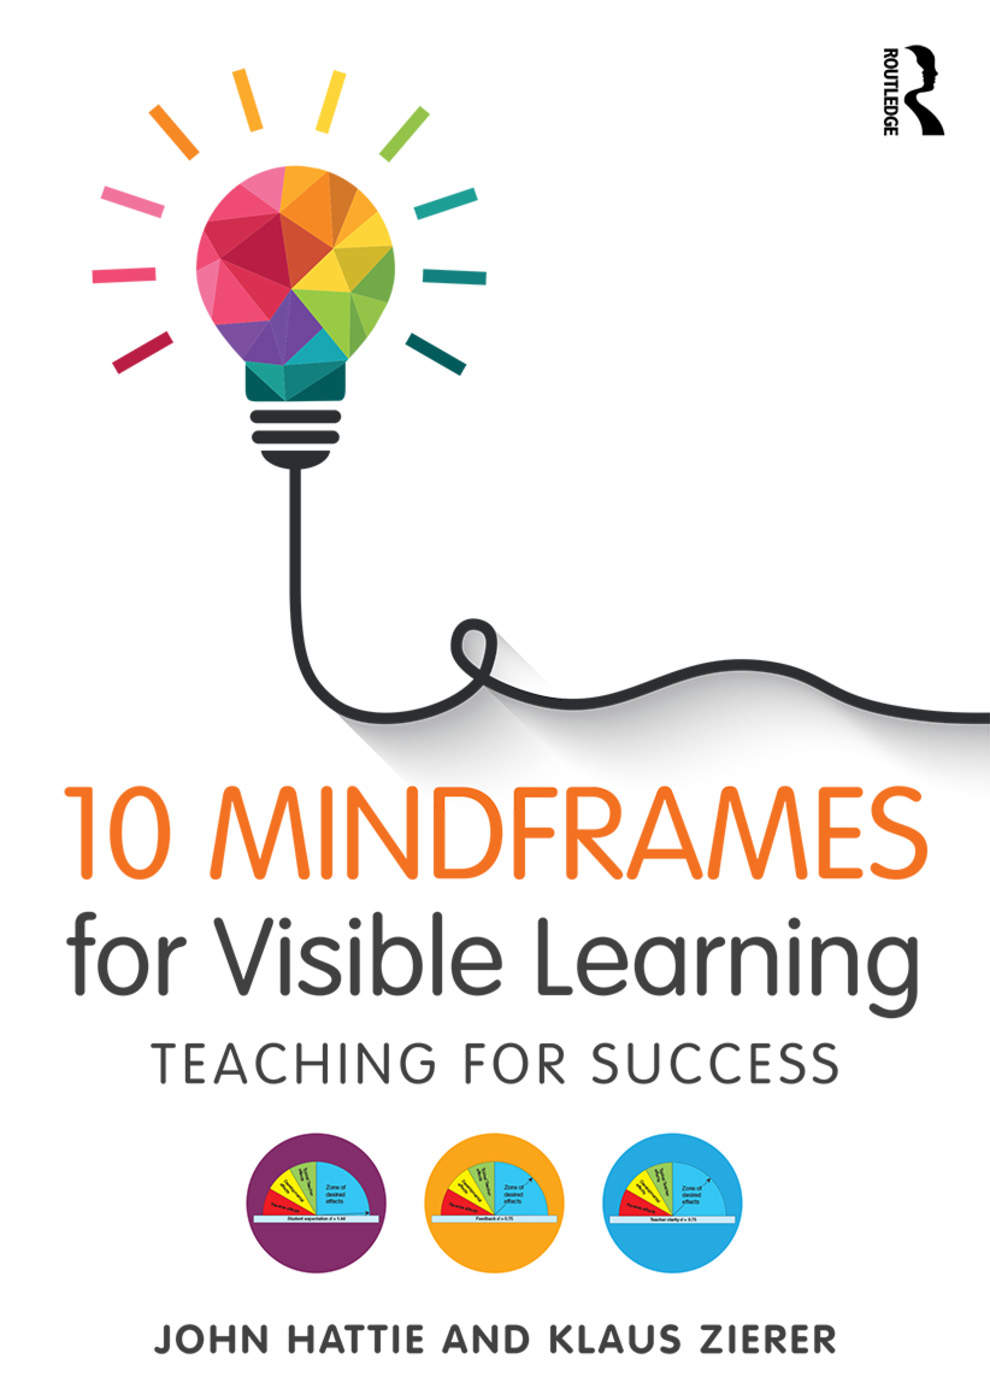 https://www.routledge.com/10-Mindframes-for-Visible-Learning-Teaching-for-Success/Hattie-Zierer/p/book/9781138635524